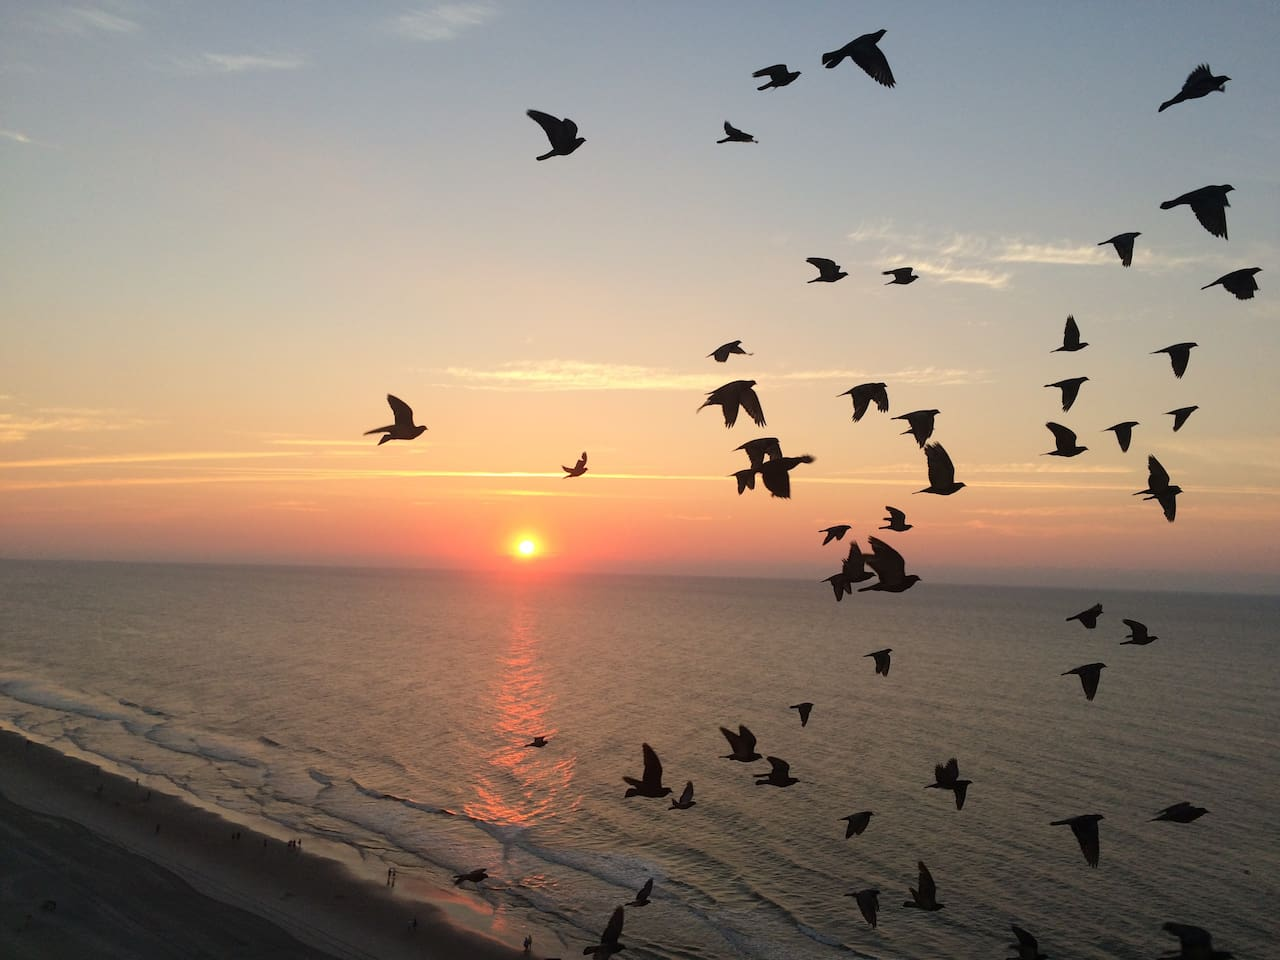 Take a quarter mile walk to Hammonesset state park and watch the sunrise or sunset. Birds not included.